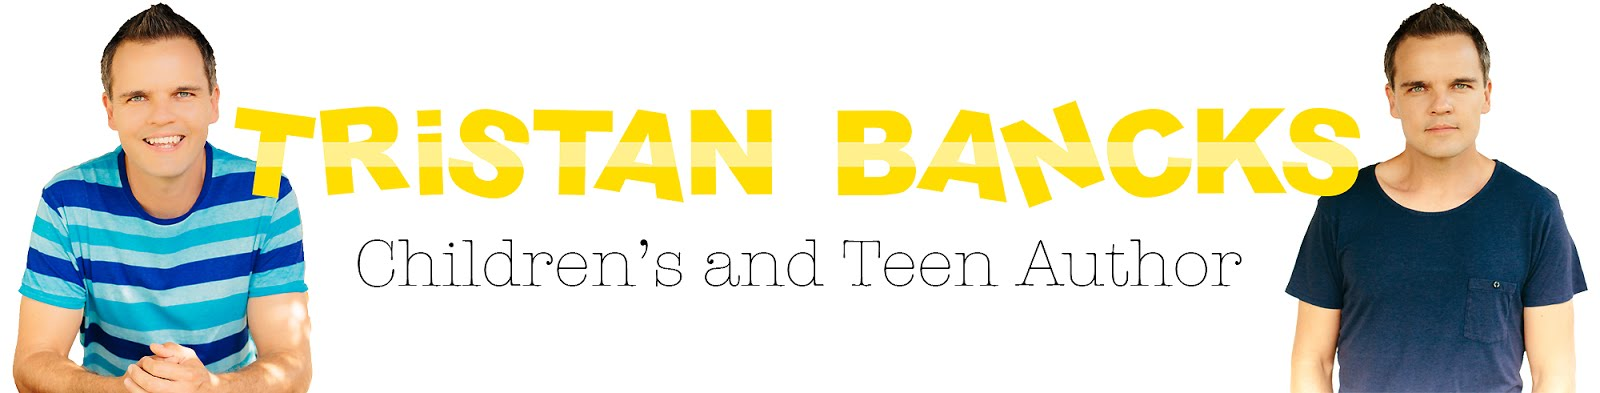 Tristan Bancks | Australian Children's & Teen Author | Kids' & YA Books